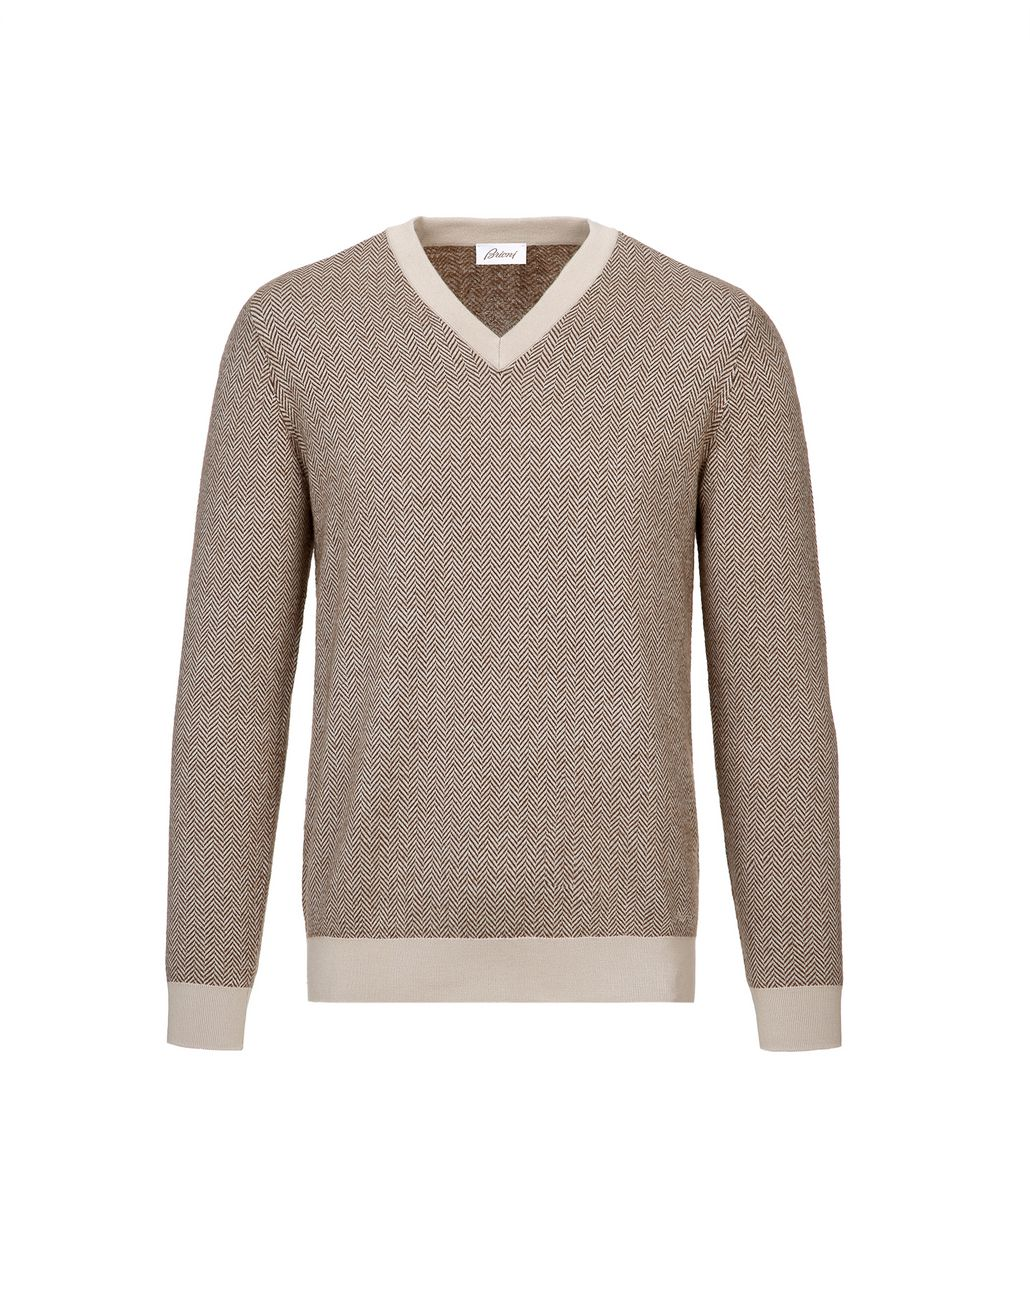 BRIONI Camel and Brown Herringbone V Neck Sweater Knitwear [*** pickupInStoreShippingNotGuaranteed_info ***] f